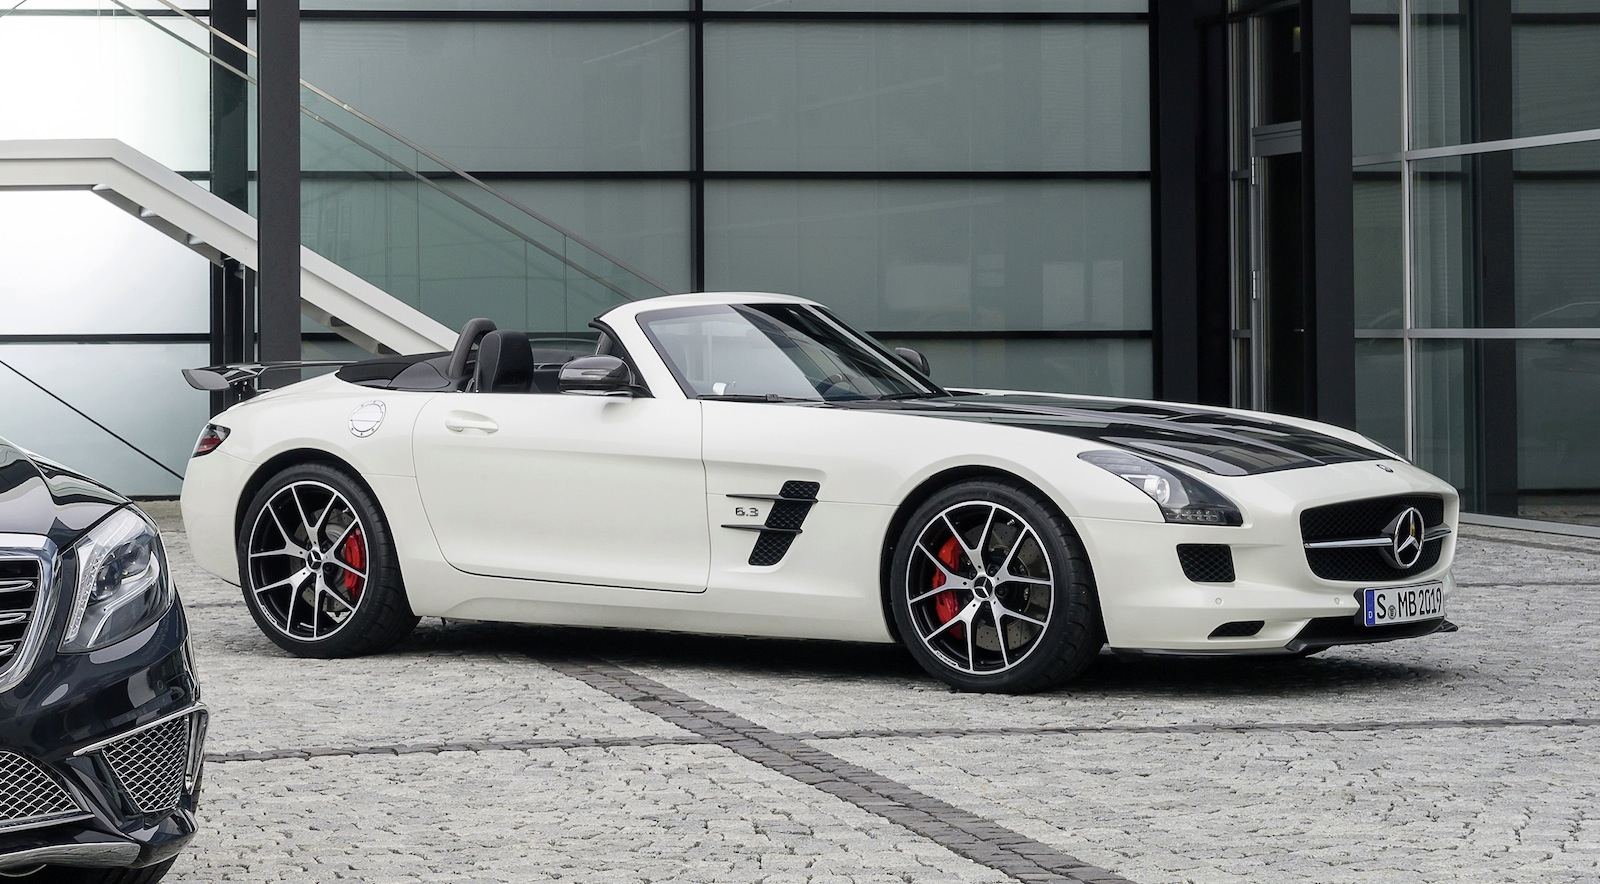 Mercedes-Benz Sls Amg Gt Final Edition #2